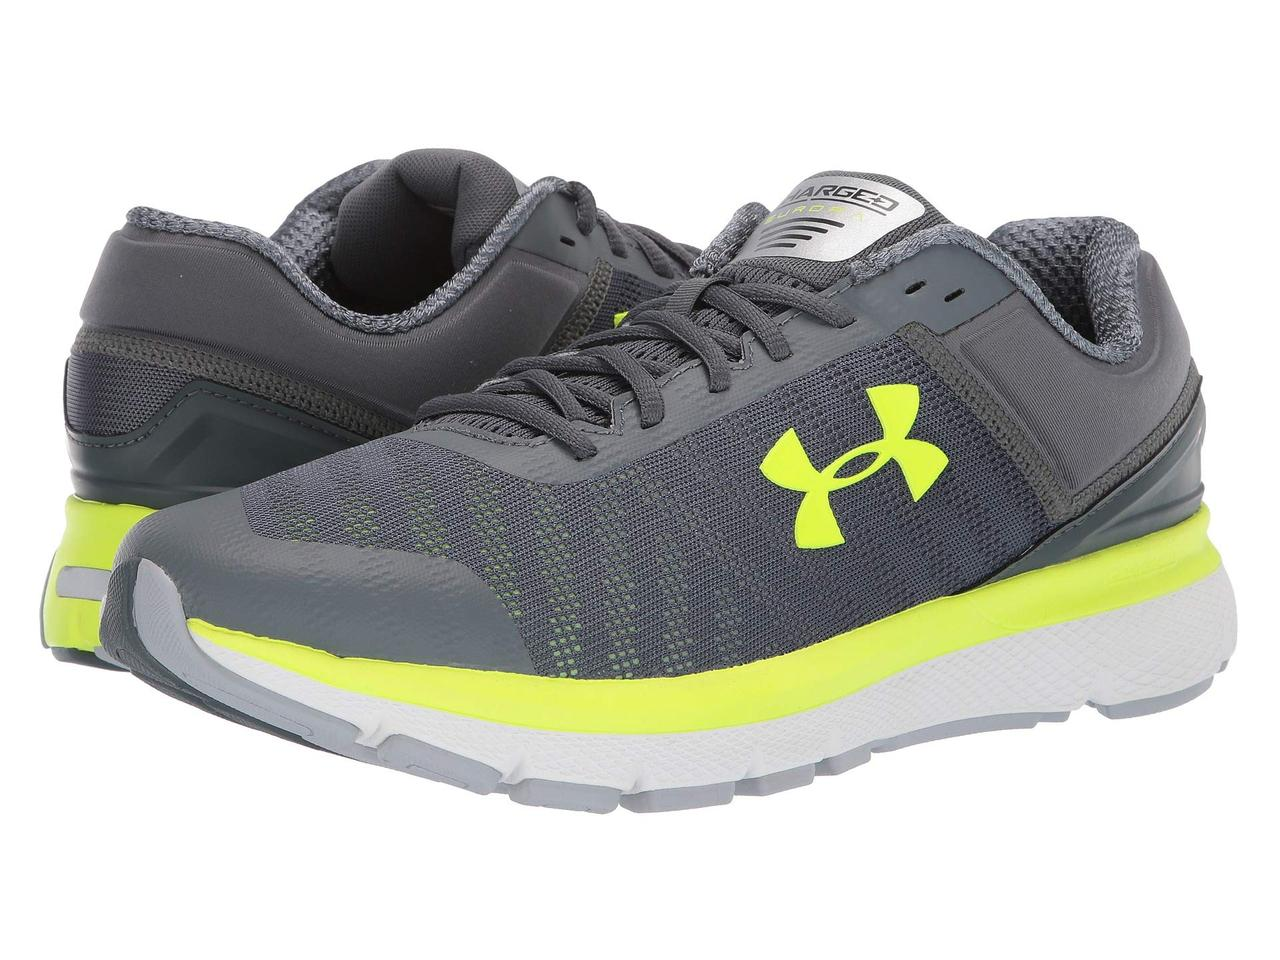 promo code 35c22 14f34 Кроссовки Кеды (Оригинал) Under Armour UA Charged Europa 2 Pitch Gray High